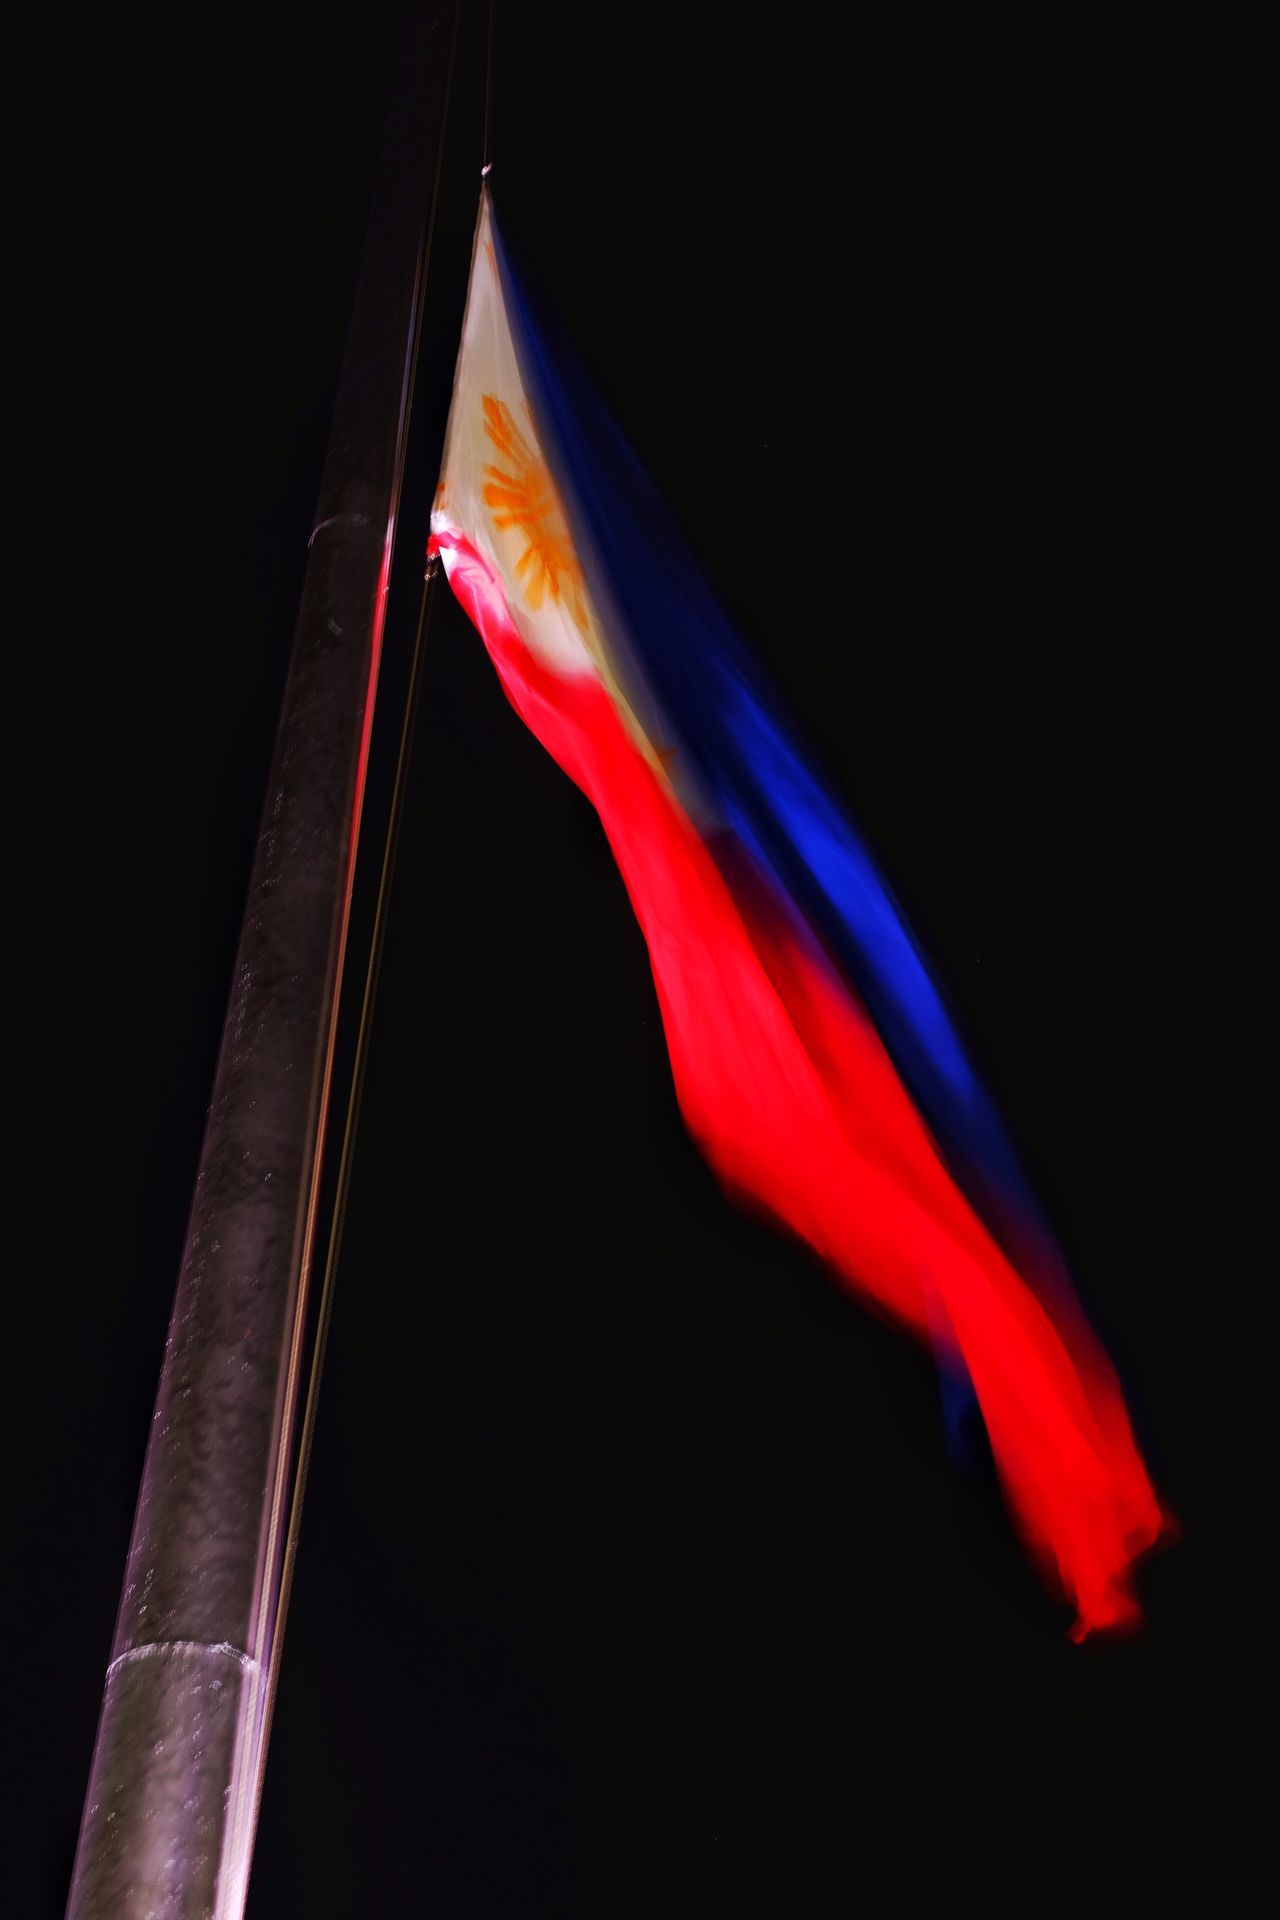 Pilipinas. Patriotism Pride Black Background Flag Red FUJIFILM X-T1 Eyeem Philippines Eyeem Album Eyeem Philippines Album Fujifilm_xseries Freedom Night Philippines Xseries EyeEm Gallery Eye Em Around The World EyeEm Best Shots Philippine Flag Freed Resist